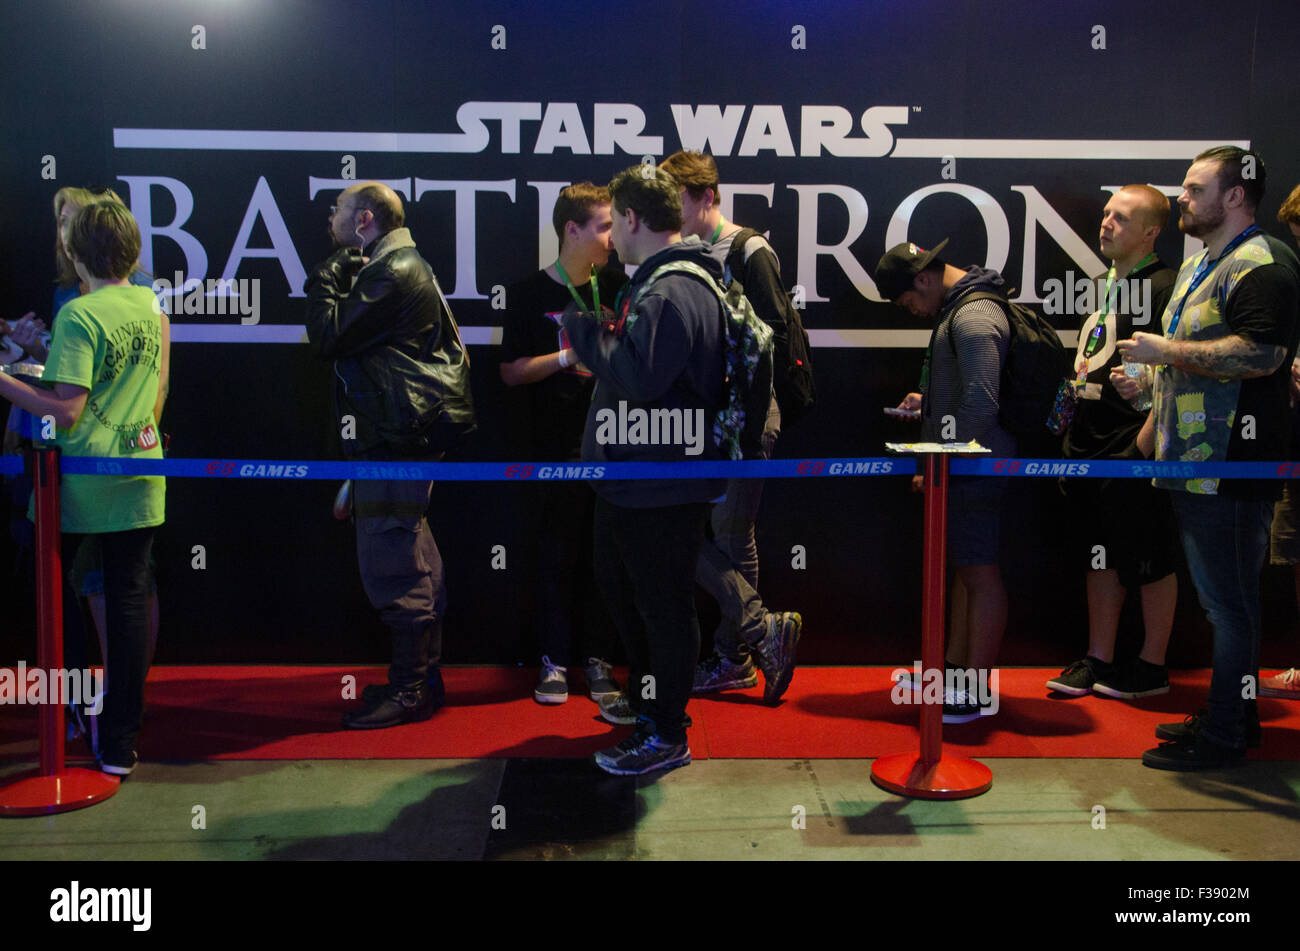 Sydney, Australia. 2nd October, 2015. Gamers lineup to play the new game Star Wars Battlefront at the 2015 EB Expo - Stock Image